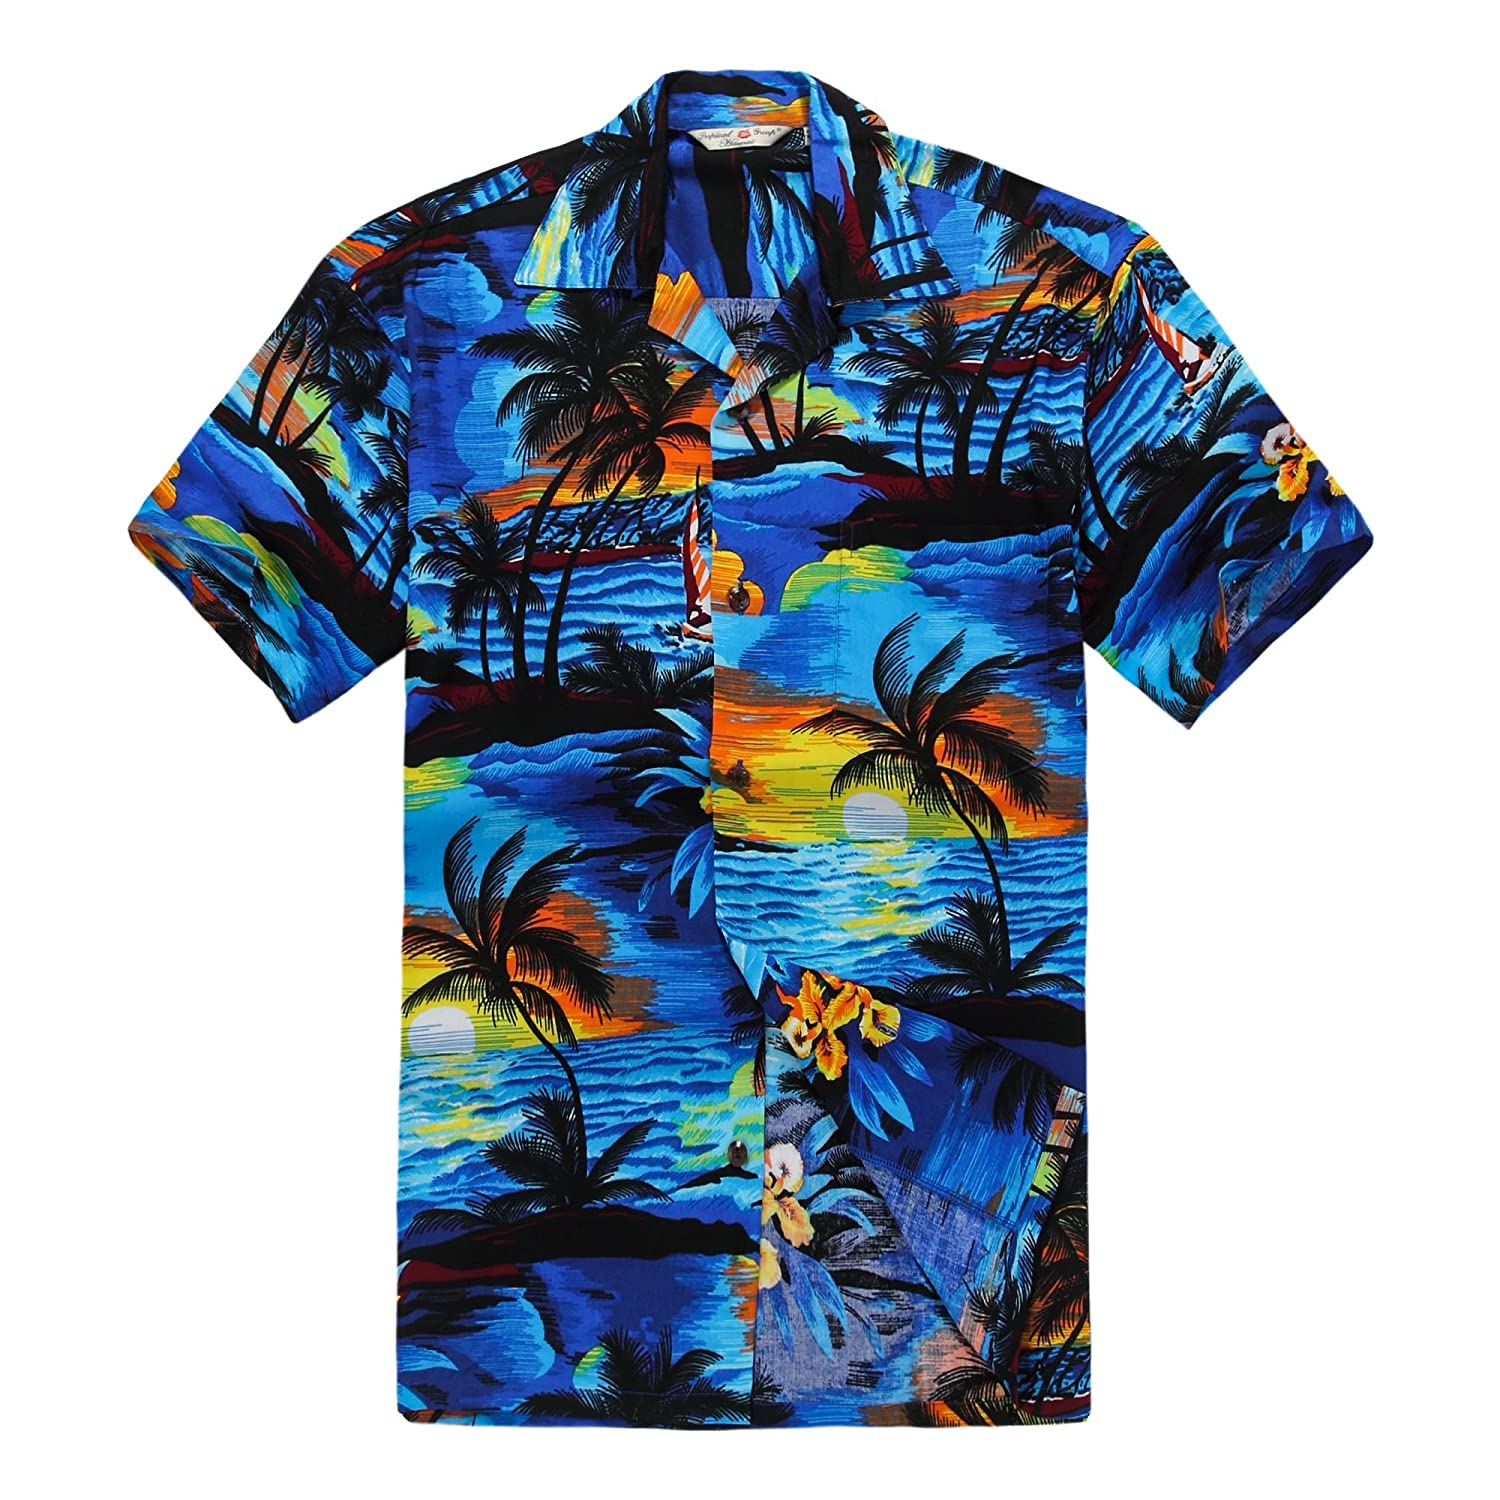 d2cd1b28e Hawaii Hangover provides custom options on its wide selection of Rayon  aloha shirts. Rayon shirts are very soft to the touch and wears very well.